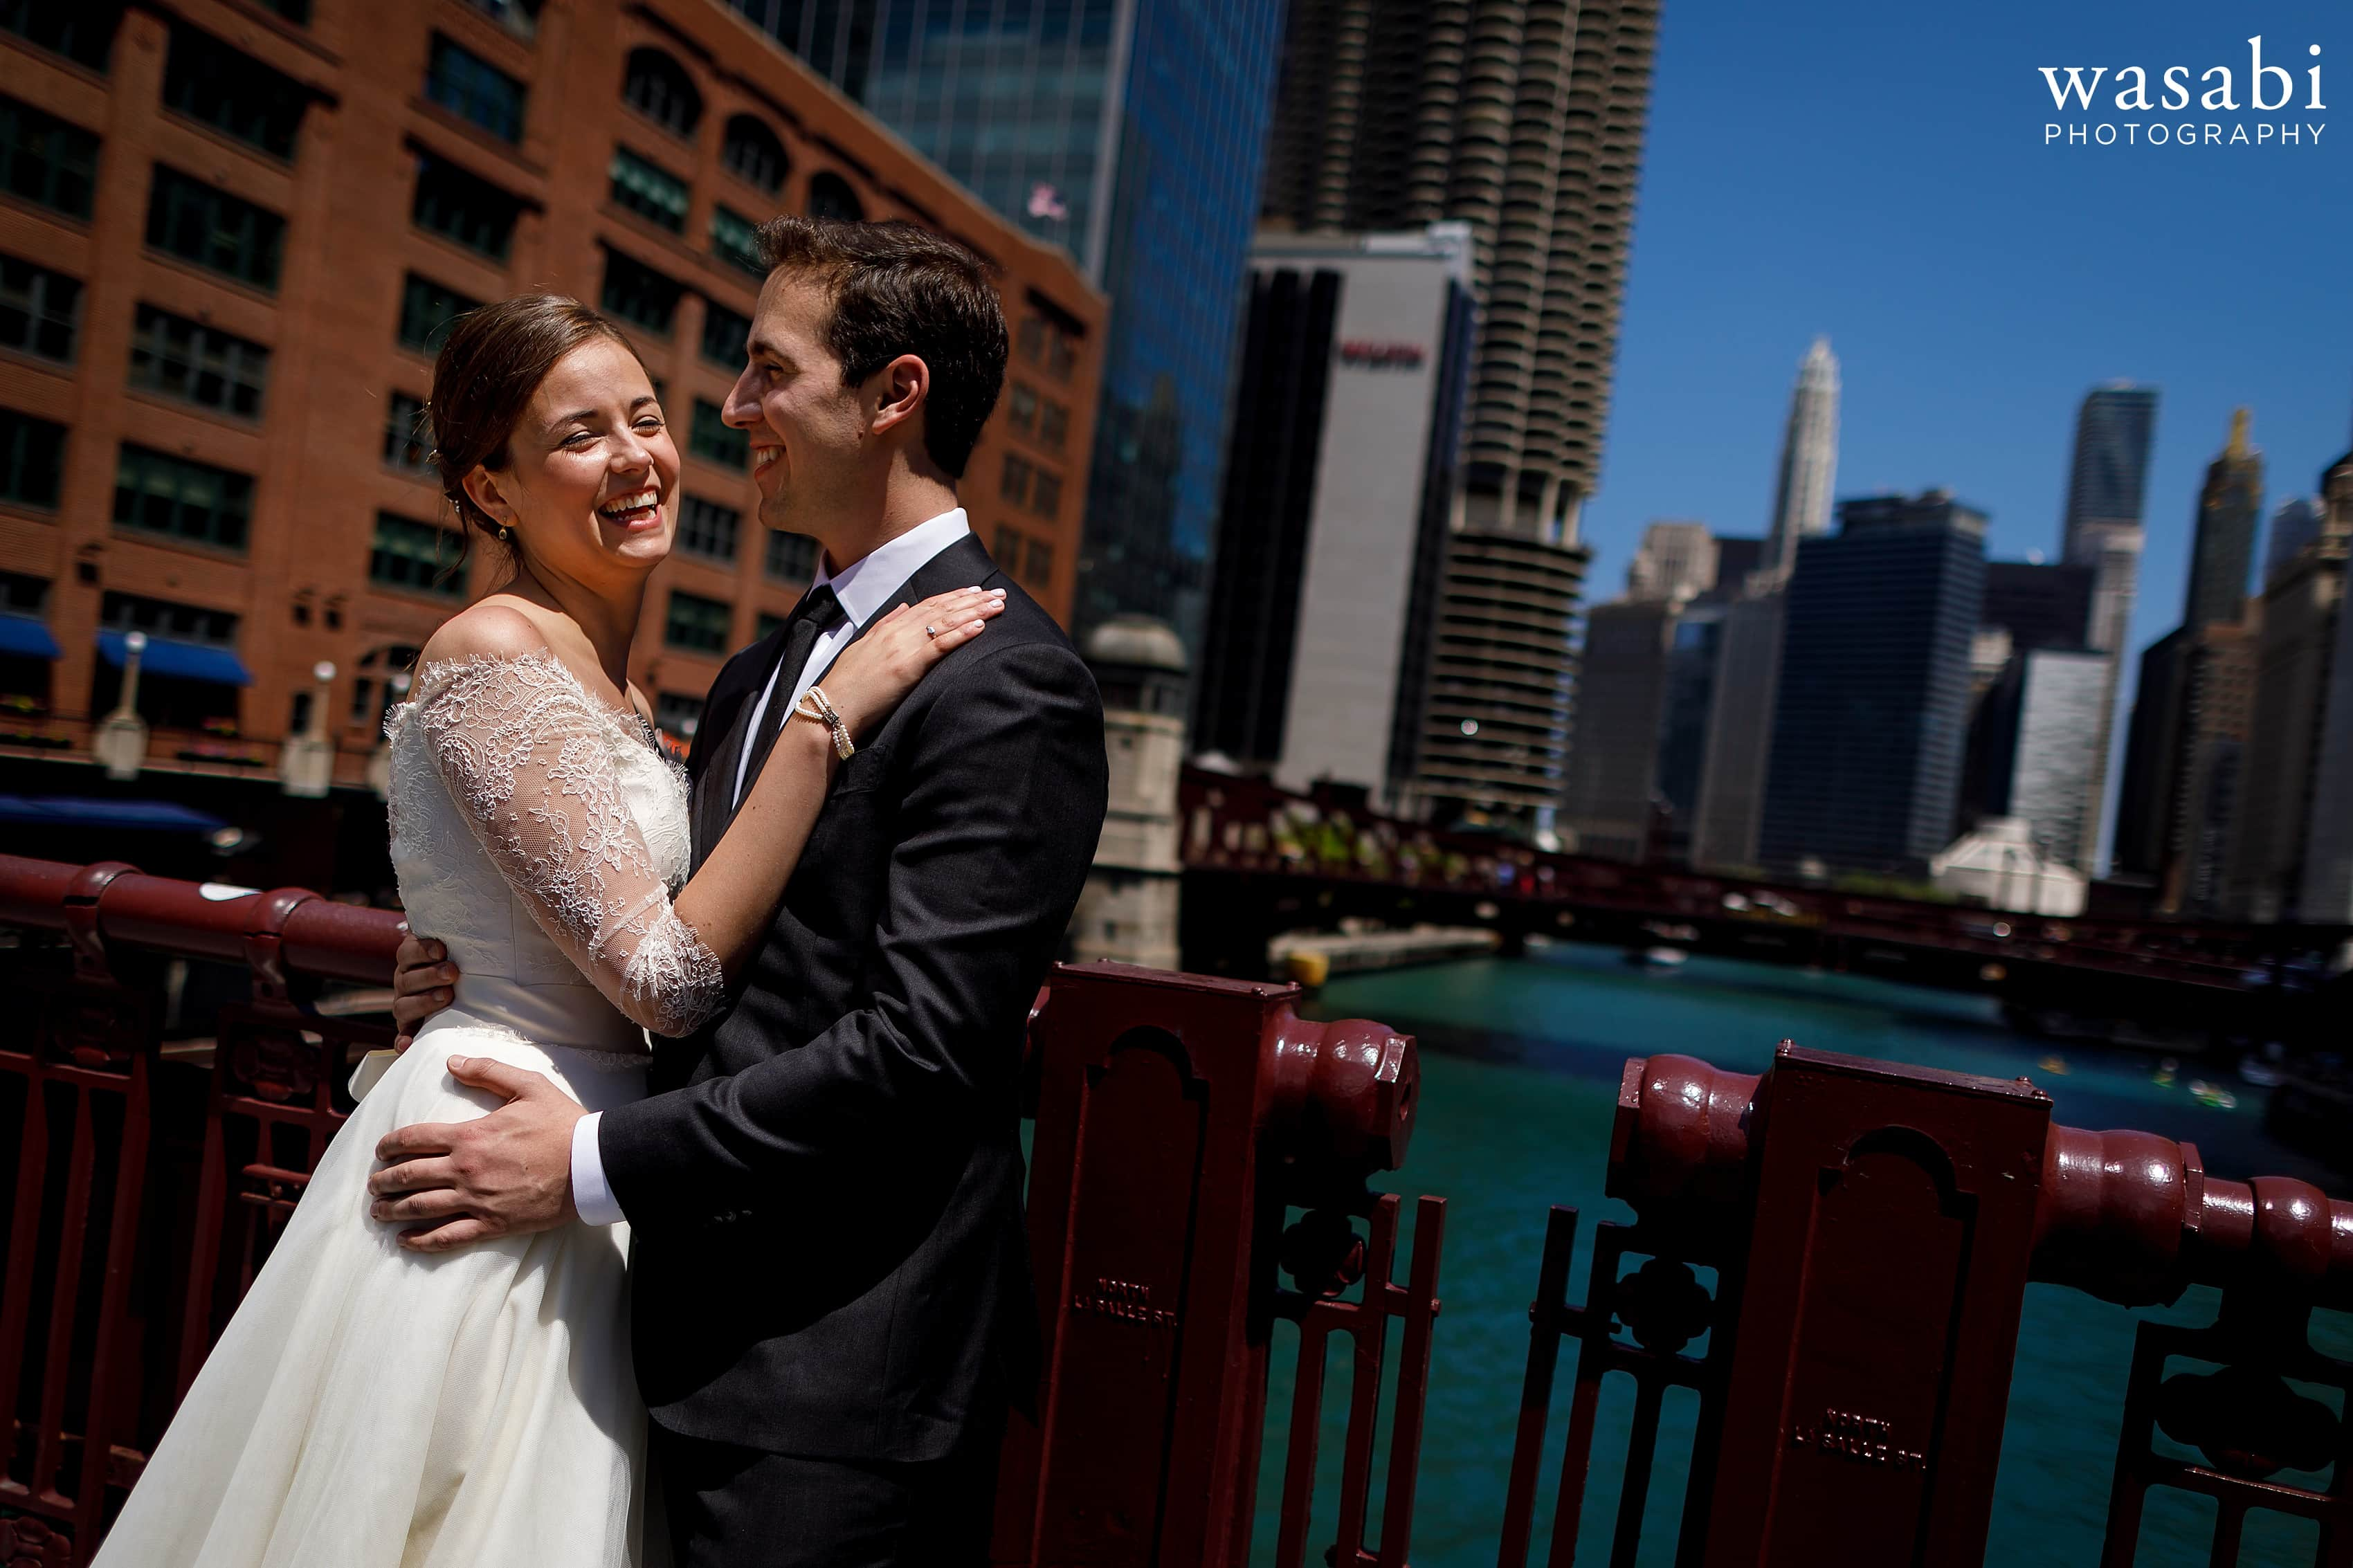 Zoe-and-Justin-pose-for-a-portrait-on-LaSalle-Street-Bridge-with-the-Chicago-River-and-skyline-in-the-background-11